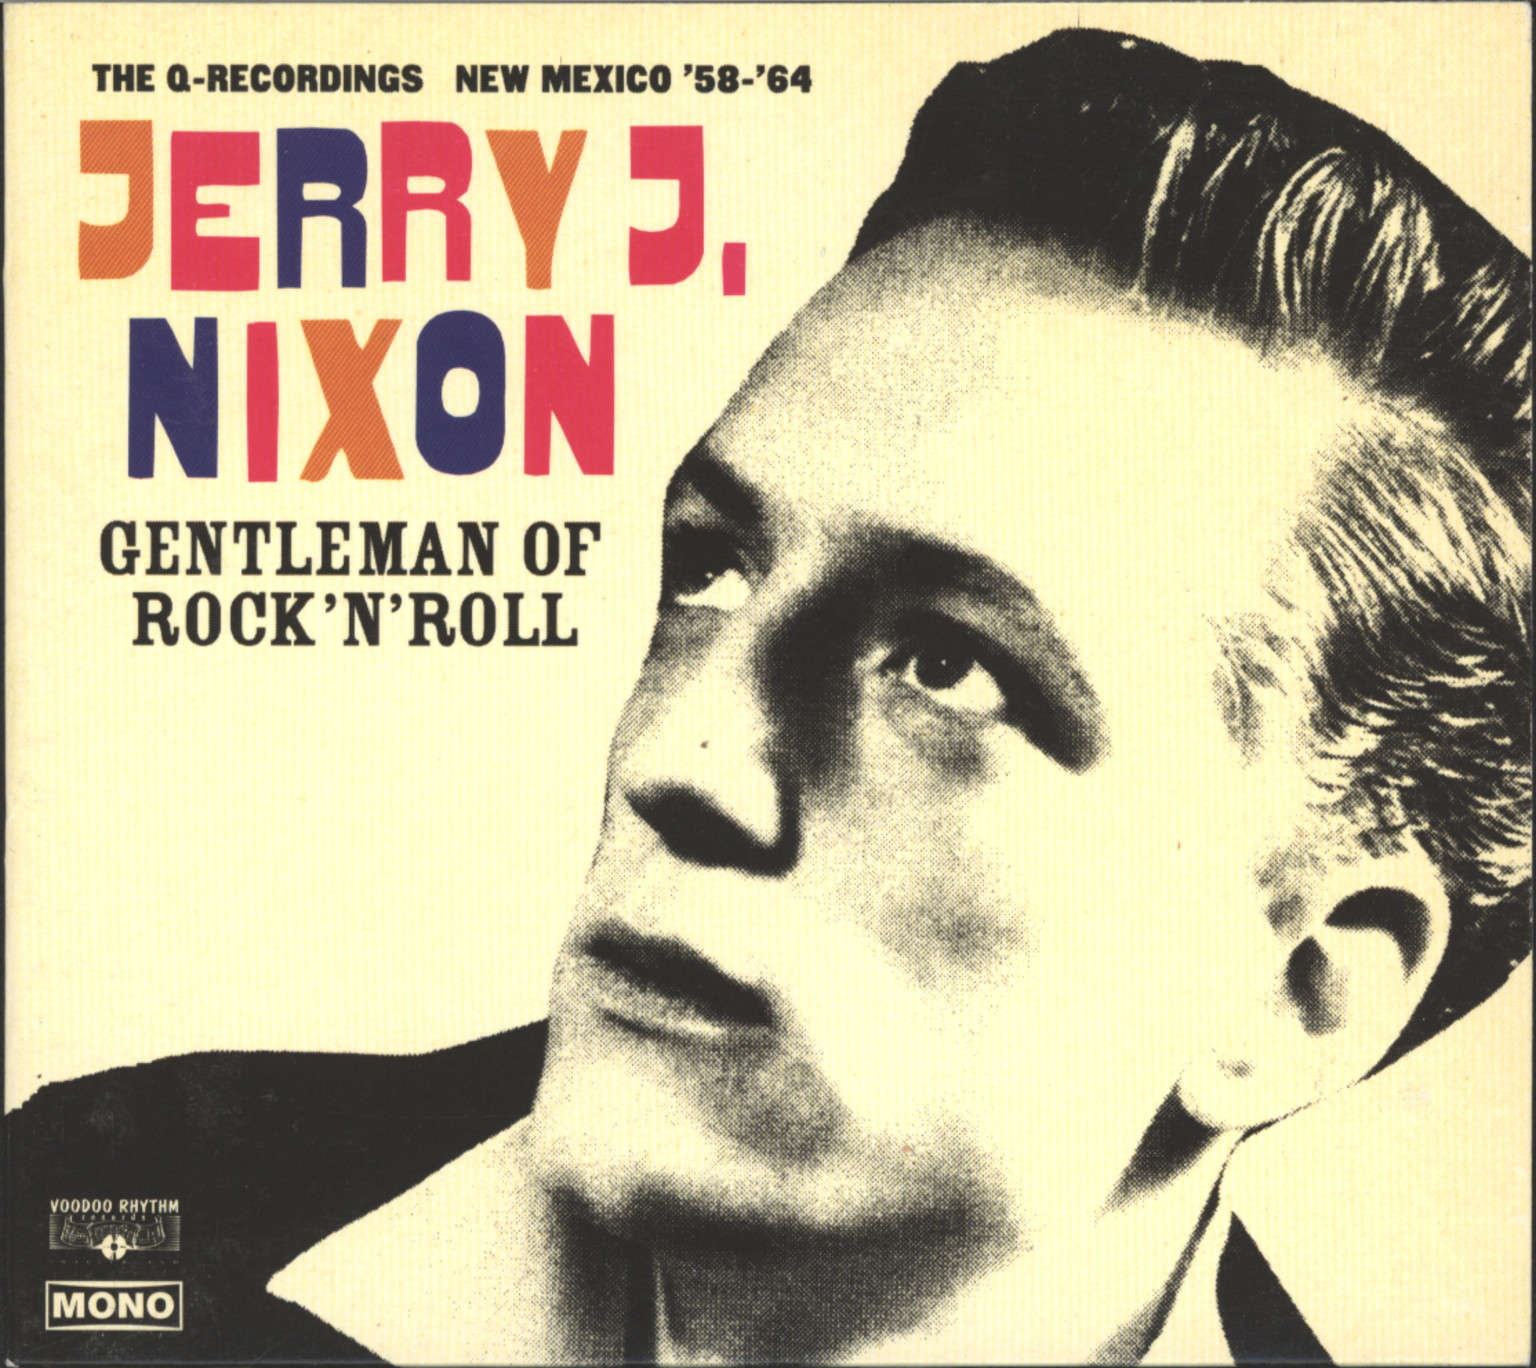 Jerry J. Nixon: Gentleman Of Rock'n'Roll (The Q-Recordings New Mexico '58 - '64), CD